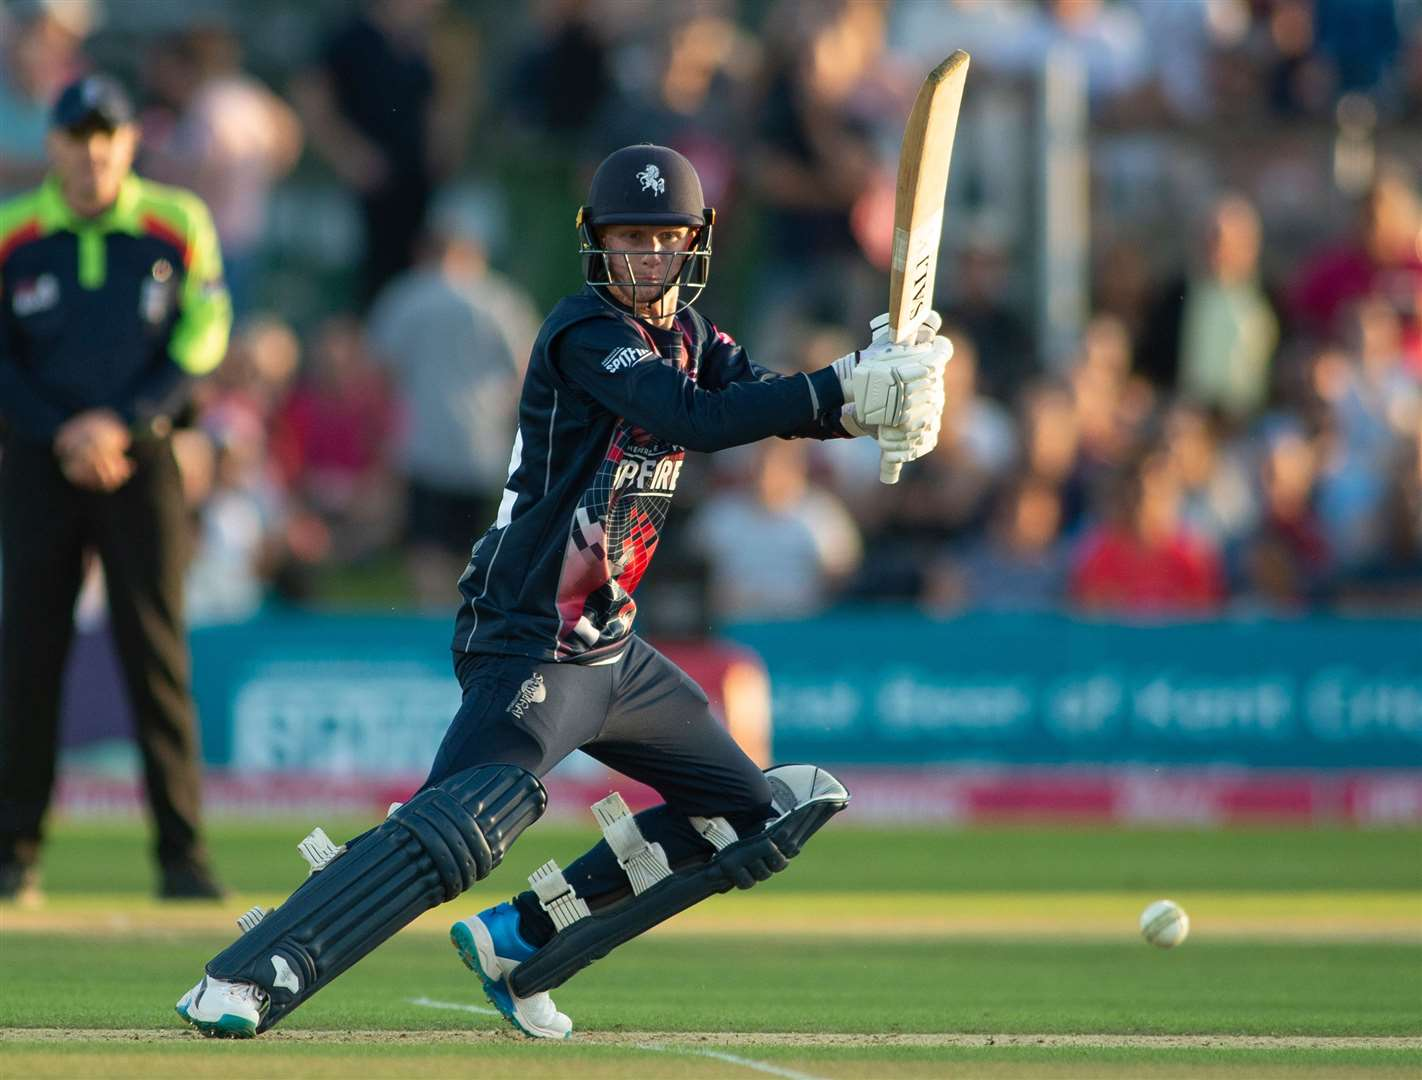 Jordan Cox looks for runs as Kent take on Somerset in the T20 Blast. Picture: Ady Kerry